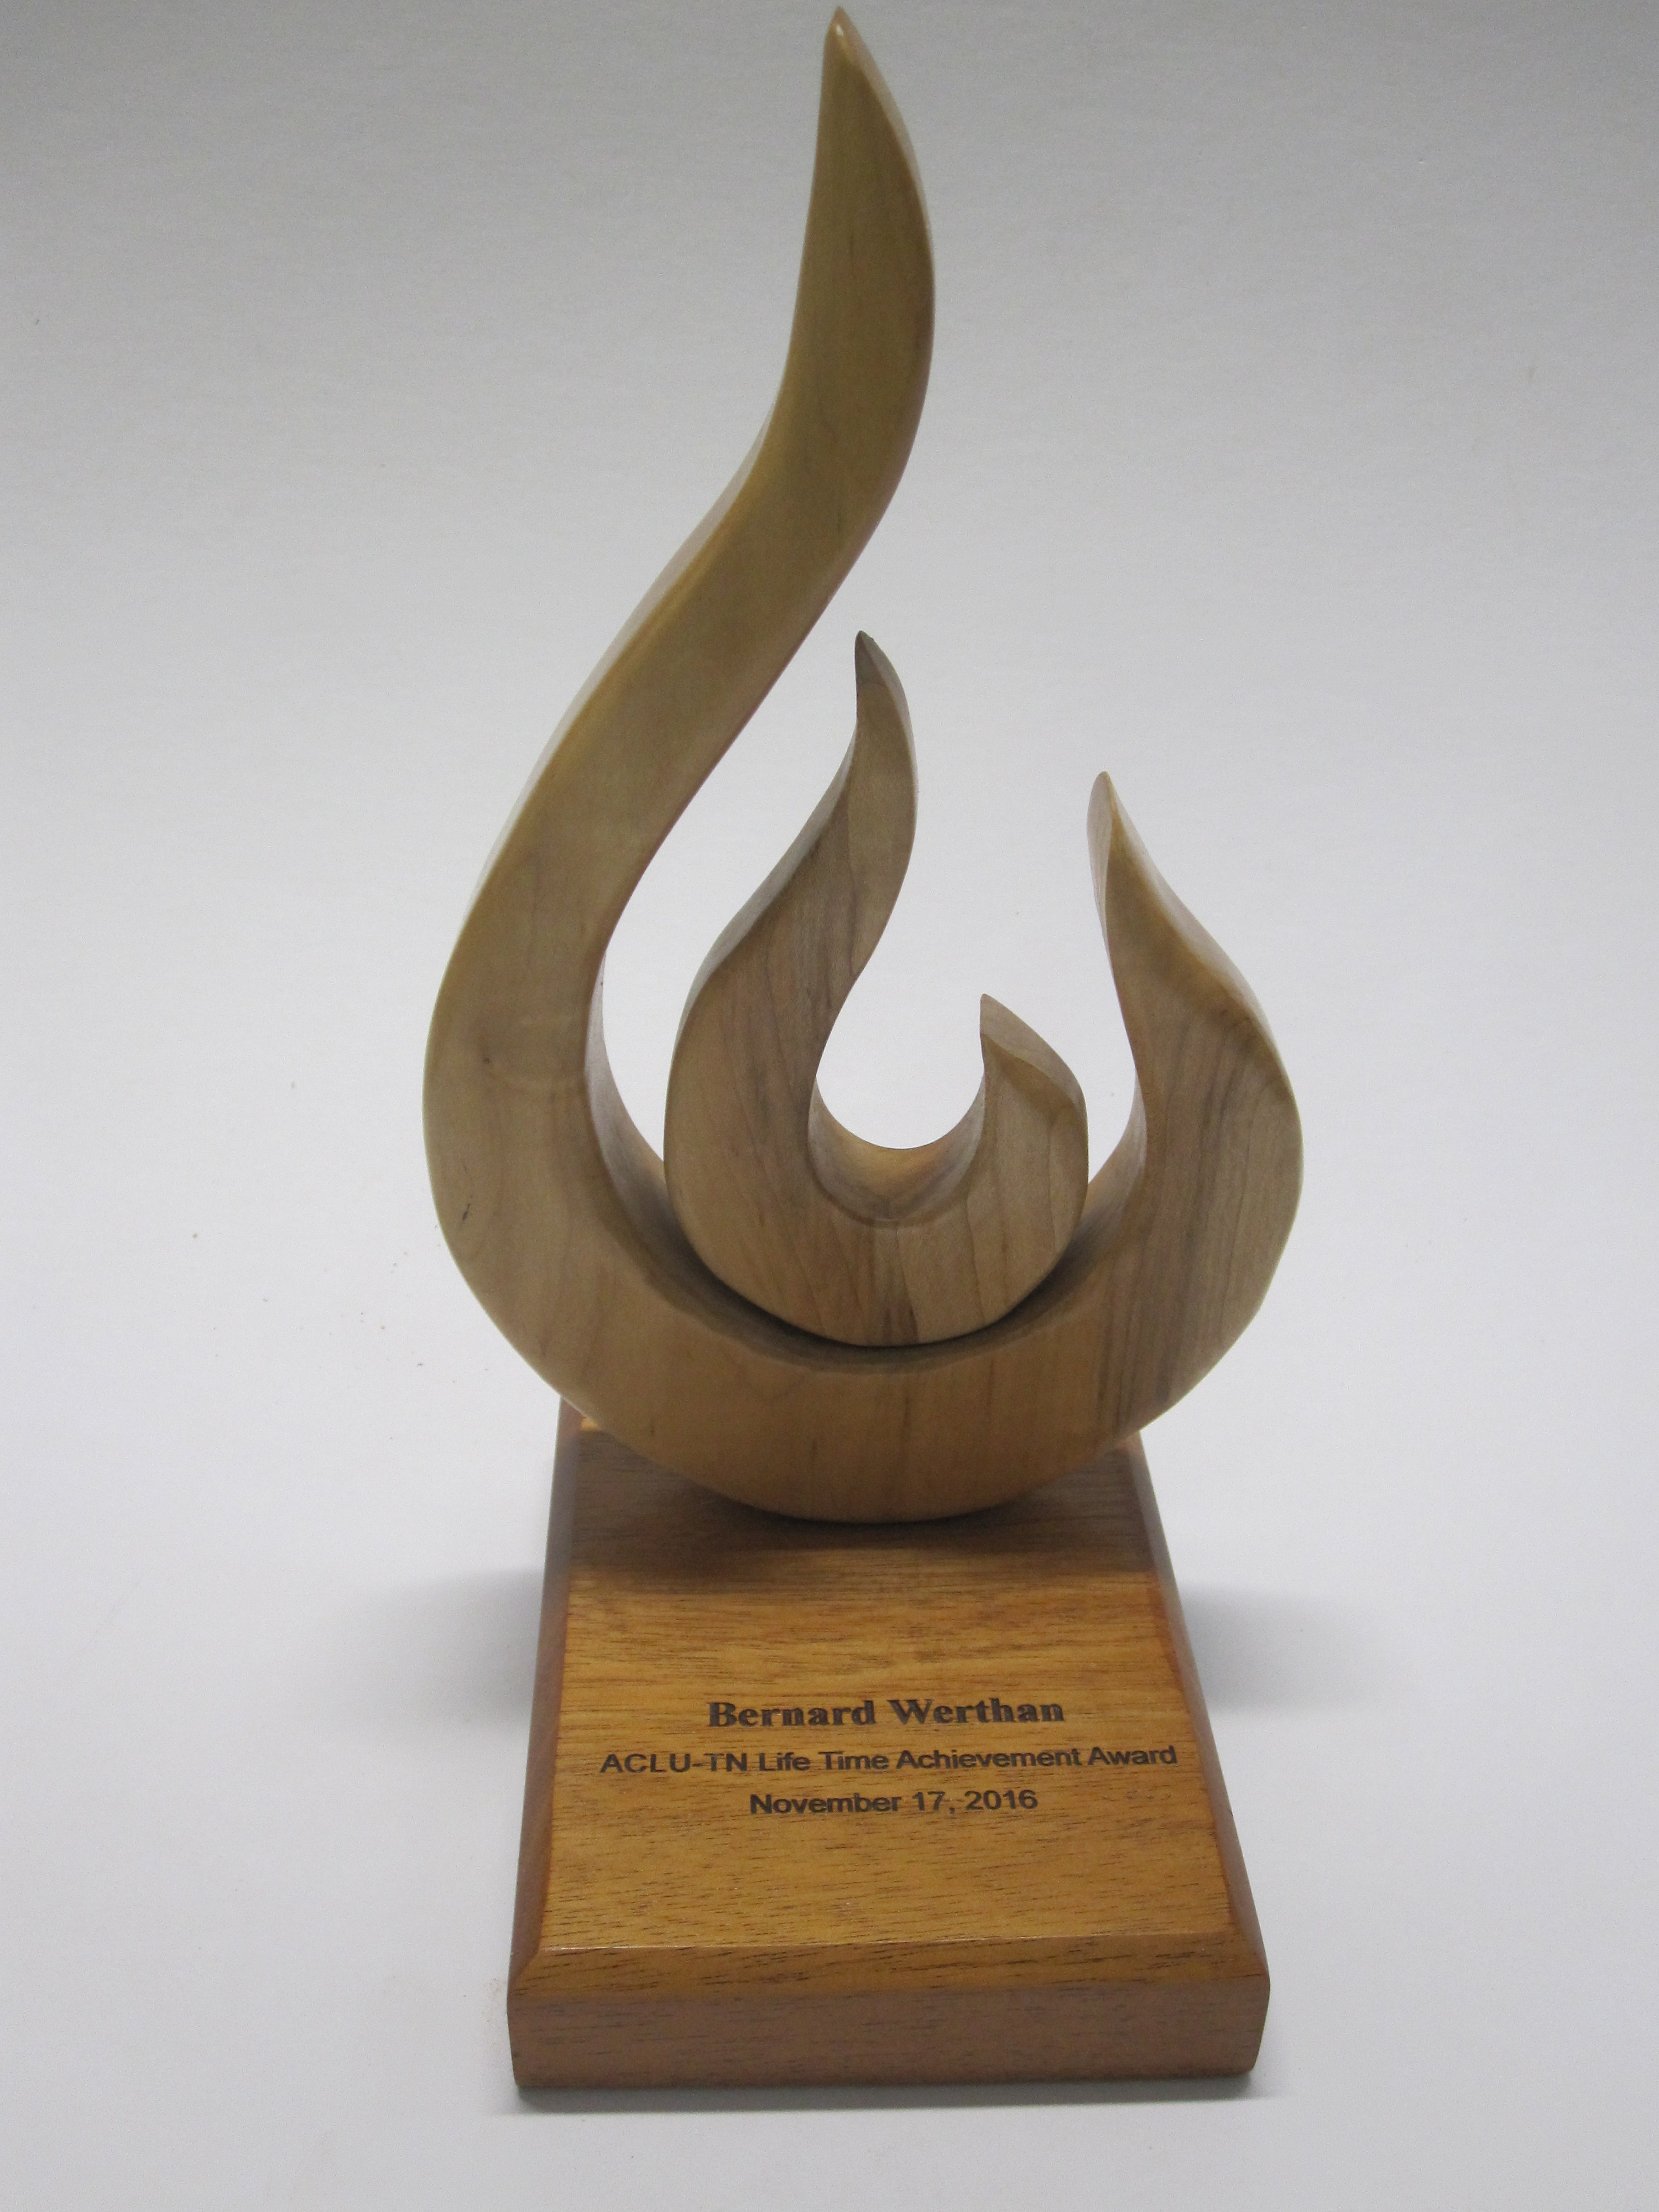 Pat designed and made the United Nations Awards in 2015 and 2016. This one went to President Obama in 2016. It is made from Black and White Ebony and has corian in the base also. Awards similar to these are in the $350-$500 range.